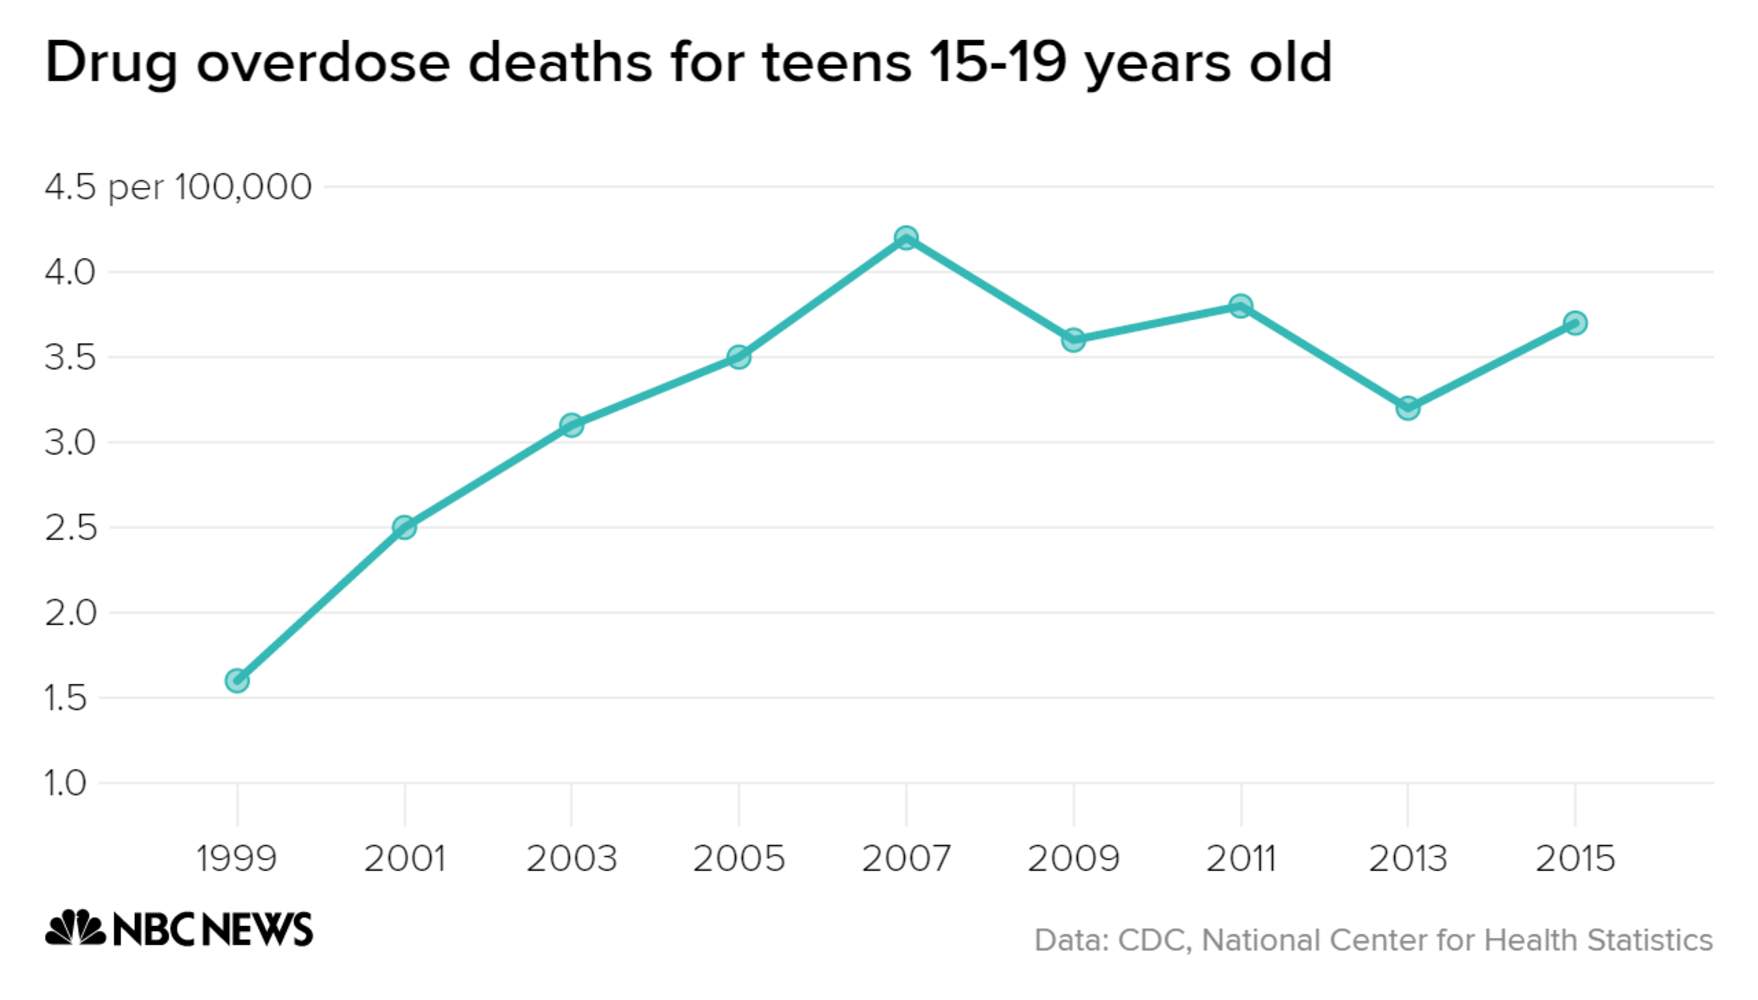 Teen Drug Overdose Rate Rose 20% in 2015 After Years of Decline